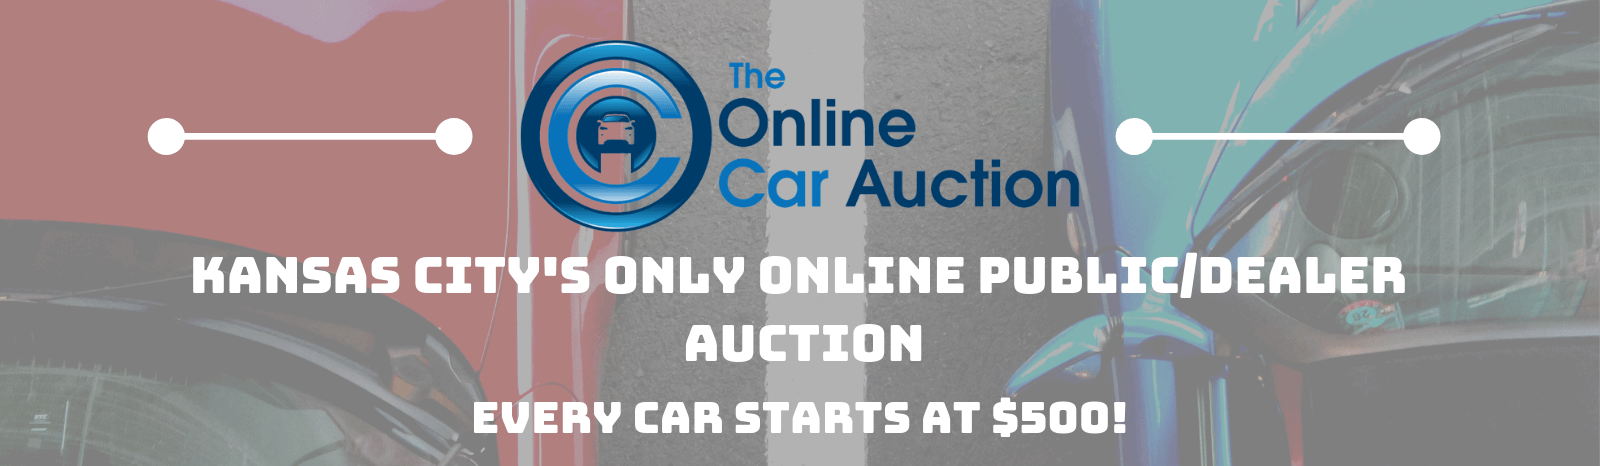 Online Public Car Auction >> Home Page The Online Car Aution Buy Or Sell Used Cars